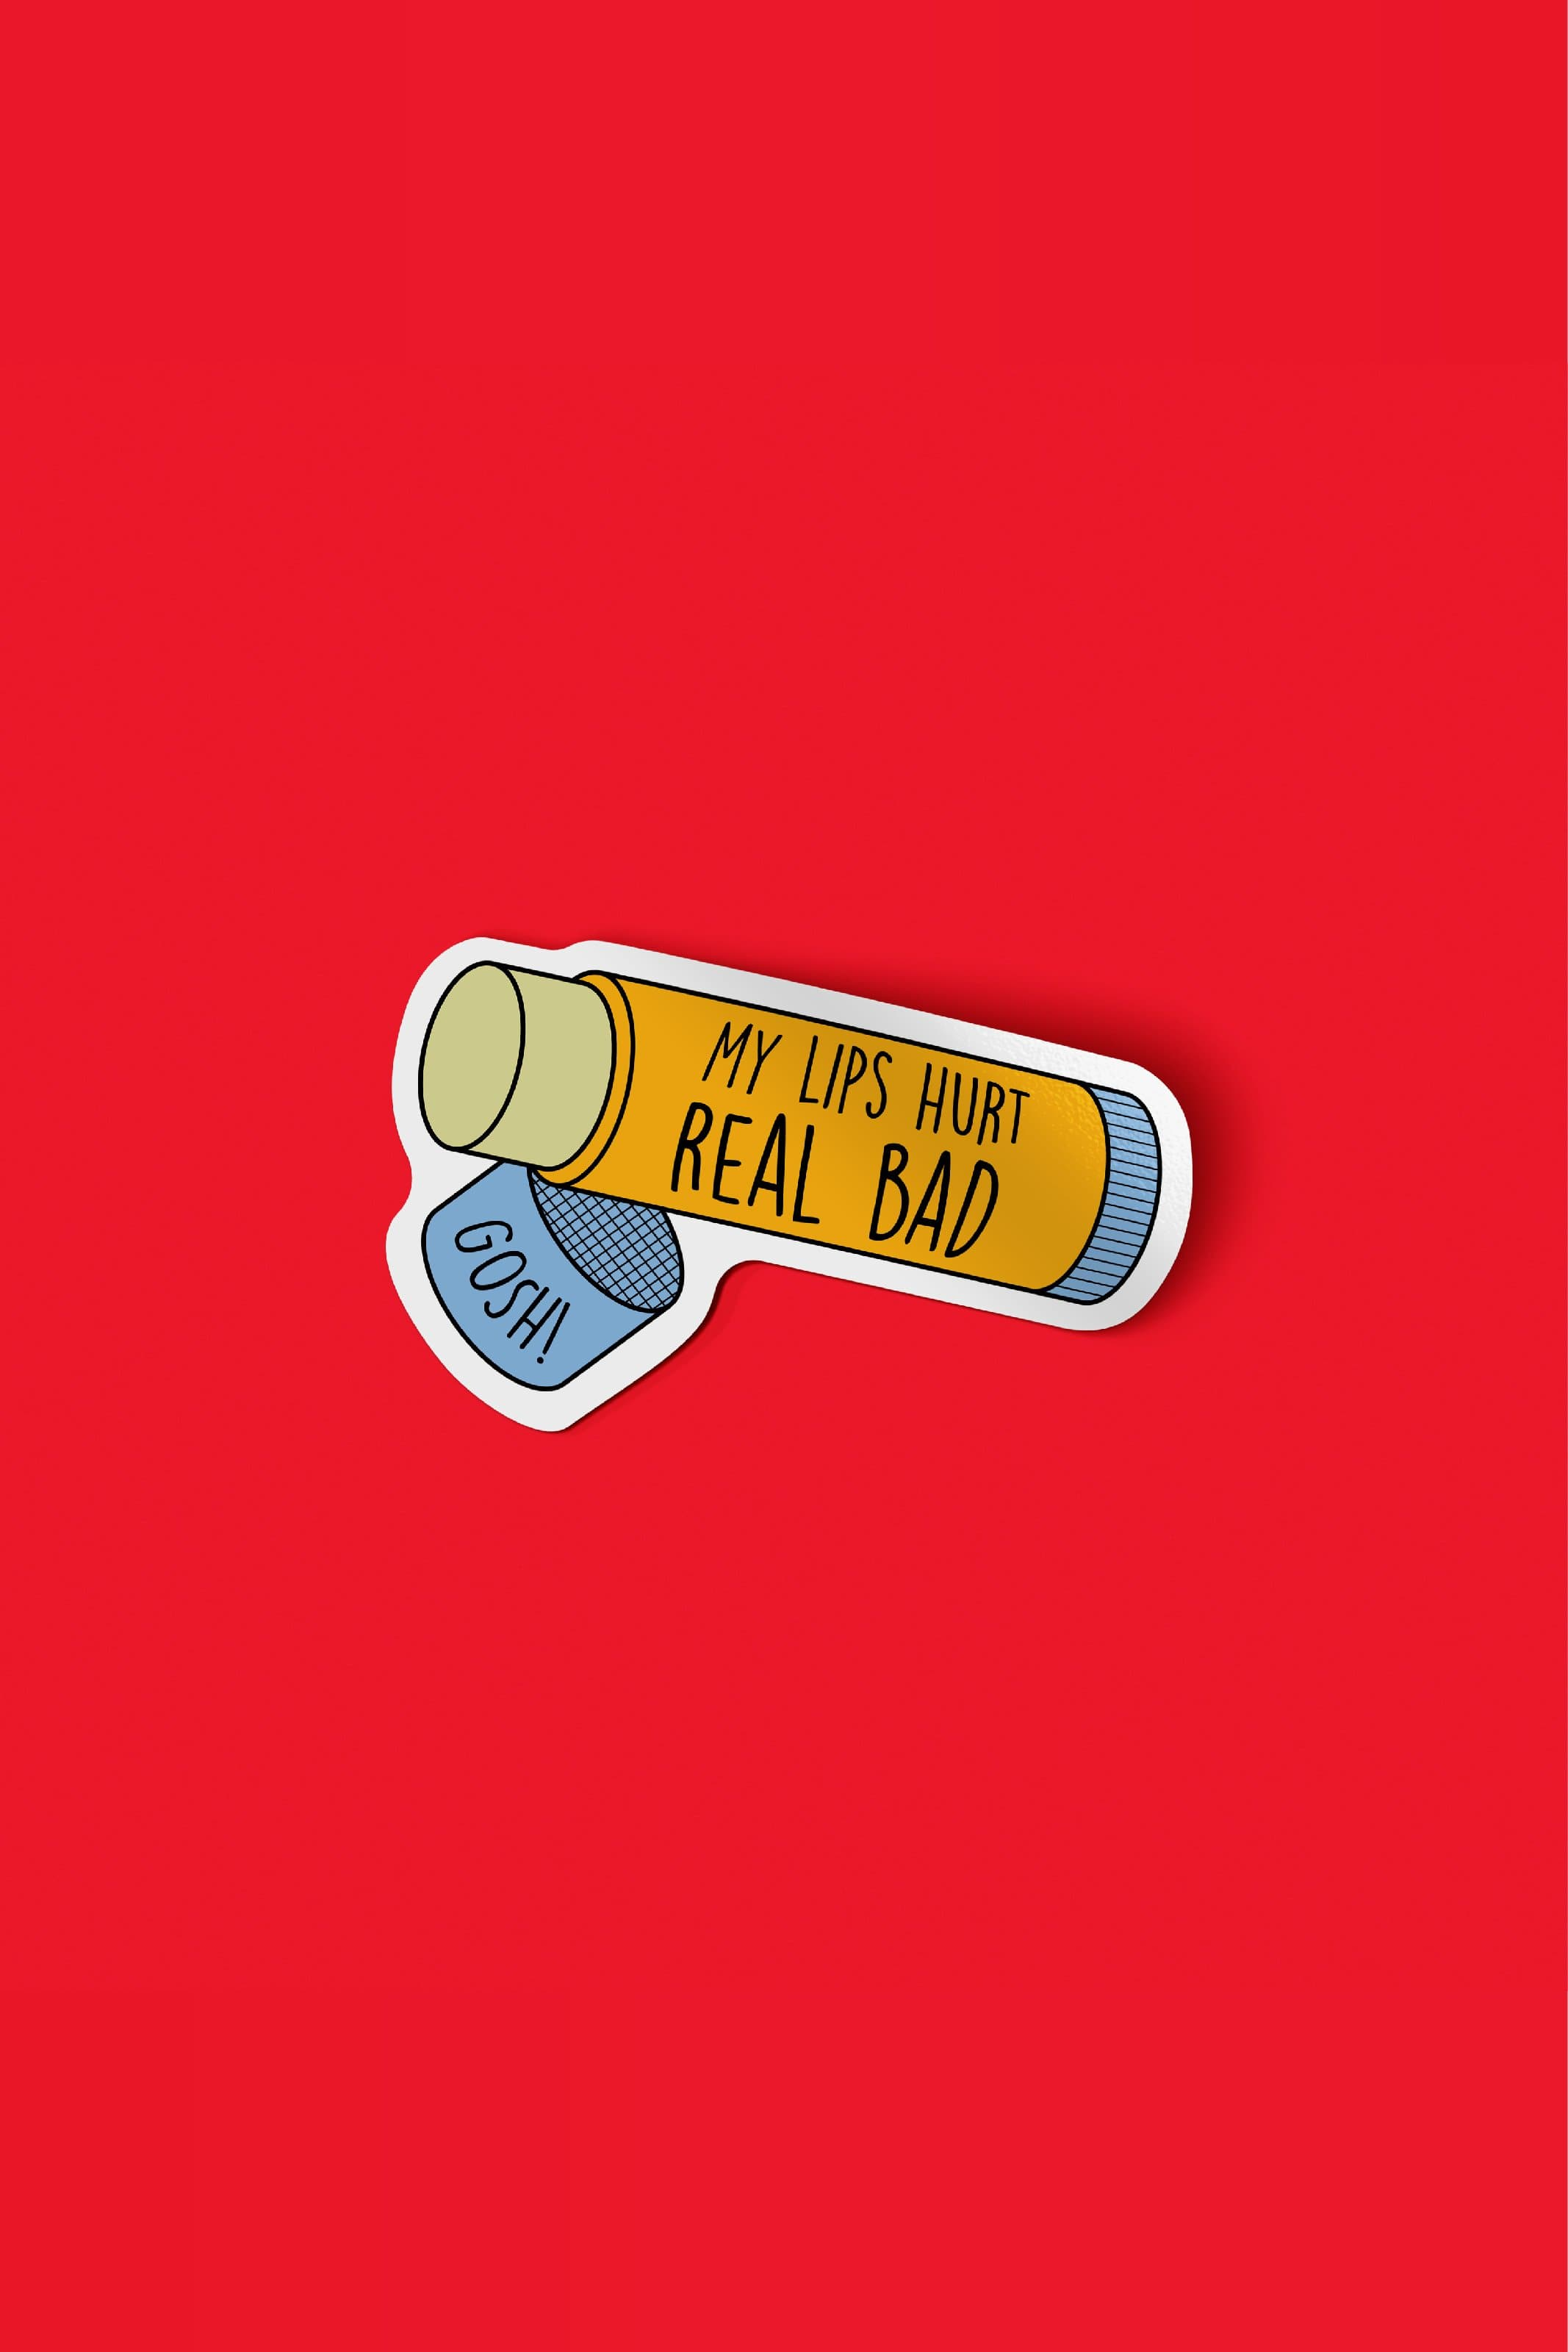 My Lips Hurt Real Bad Sticker